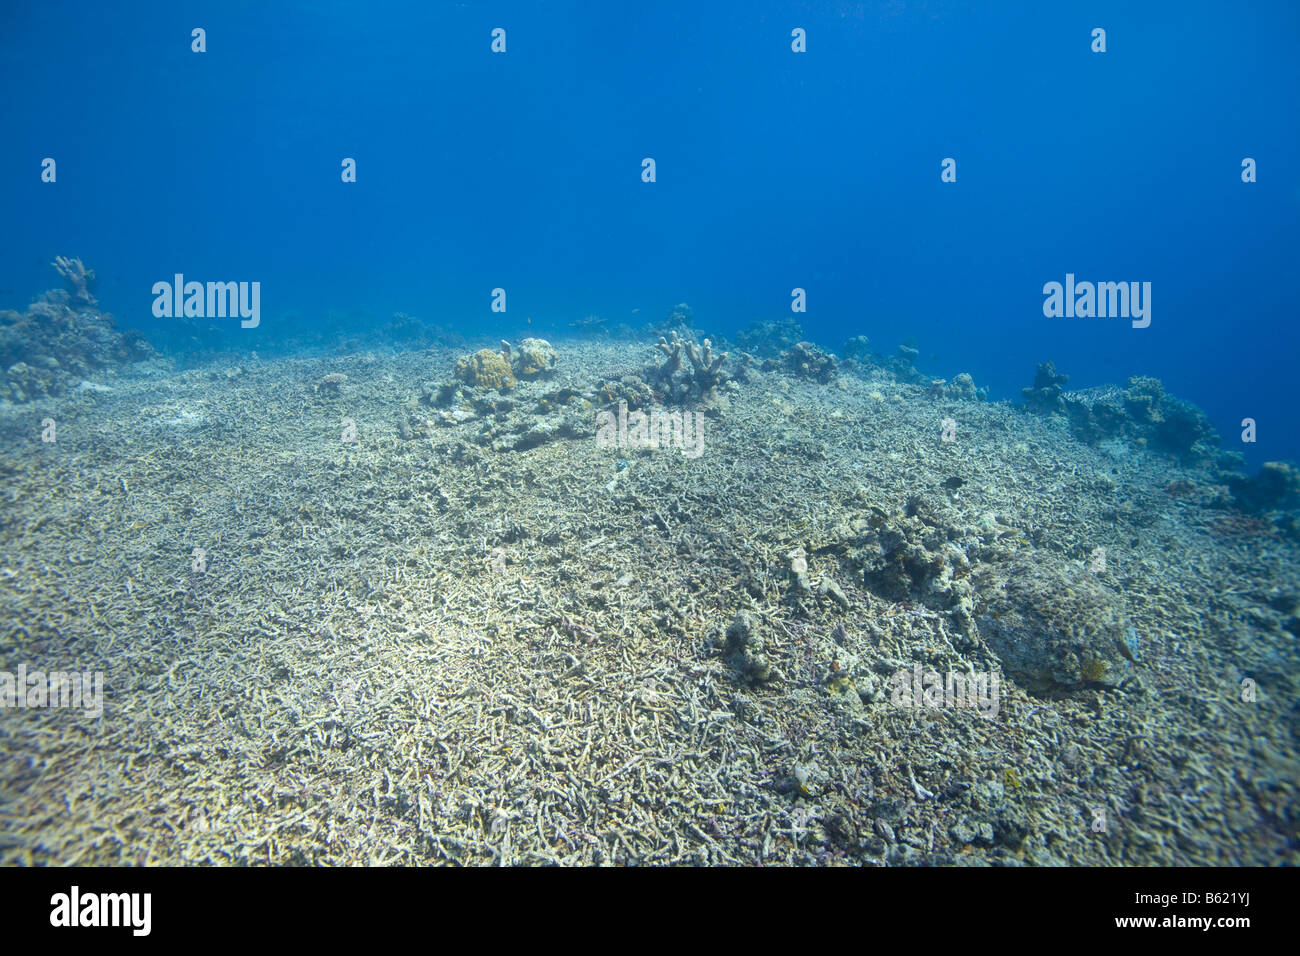 Coral reef destroyed by fishing with dynamite, Indonesia, South East Asia - Stock Image